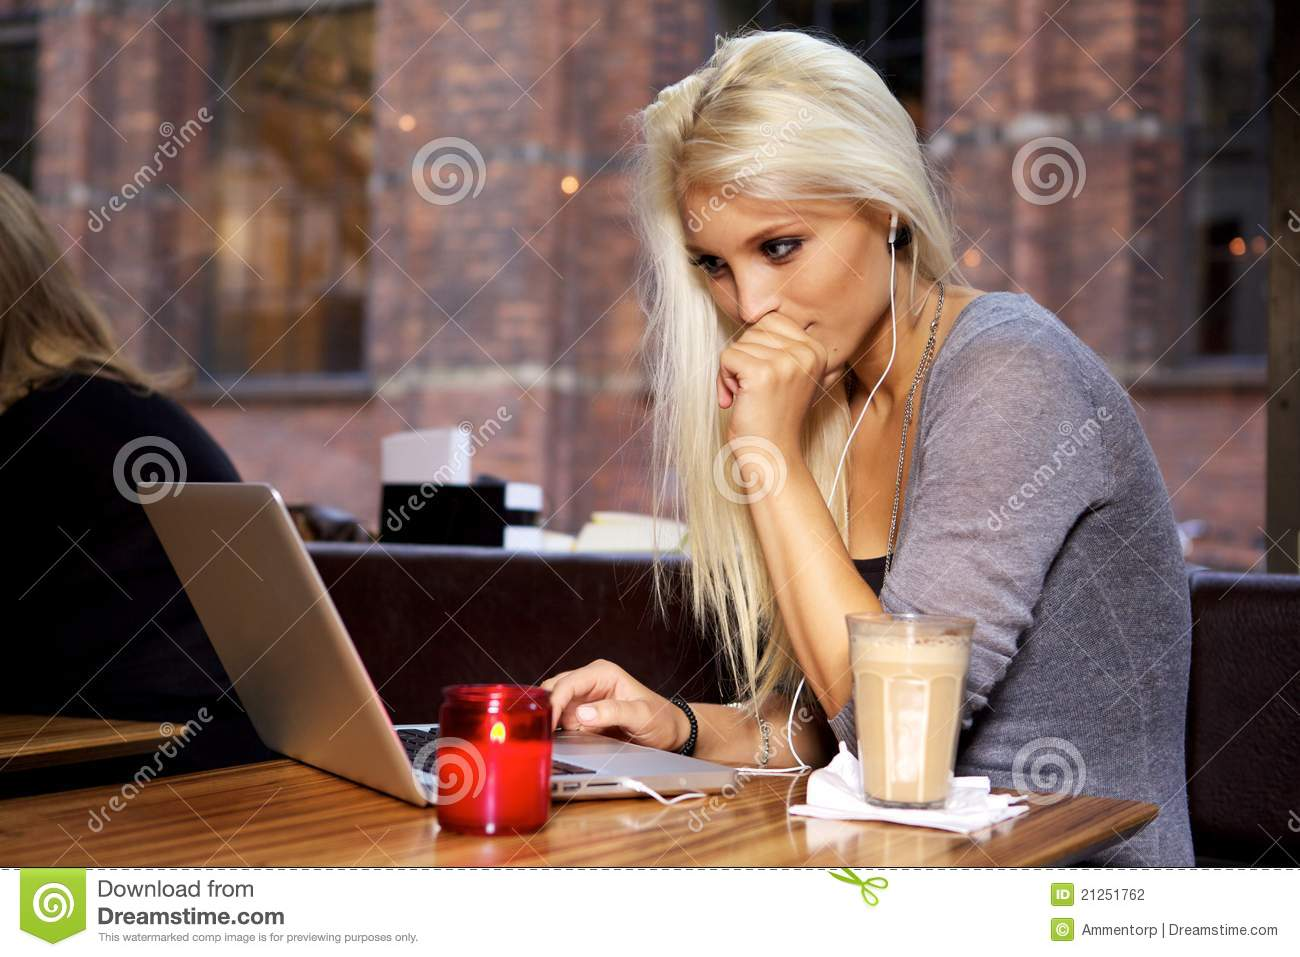 College student on cafe